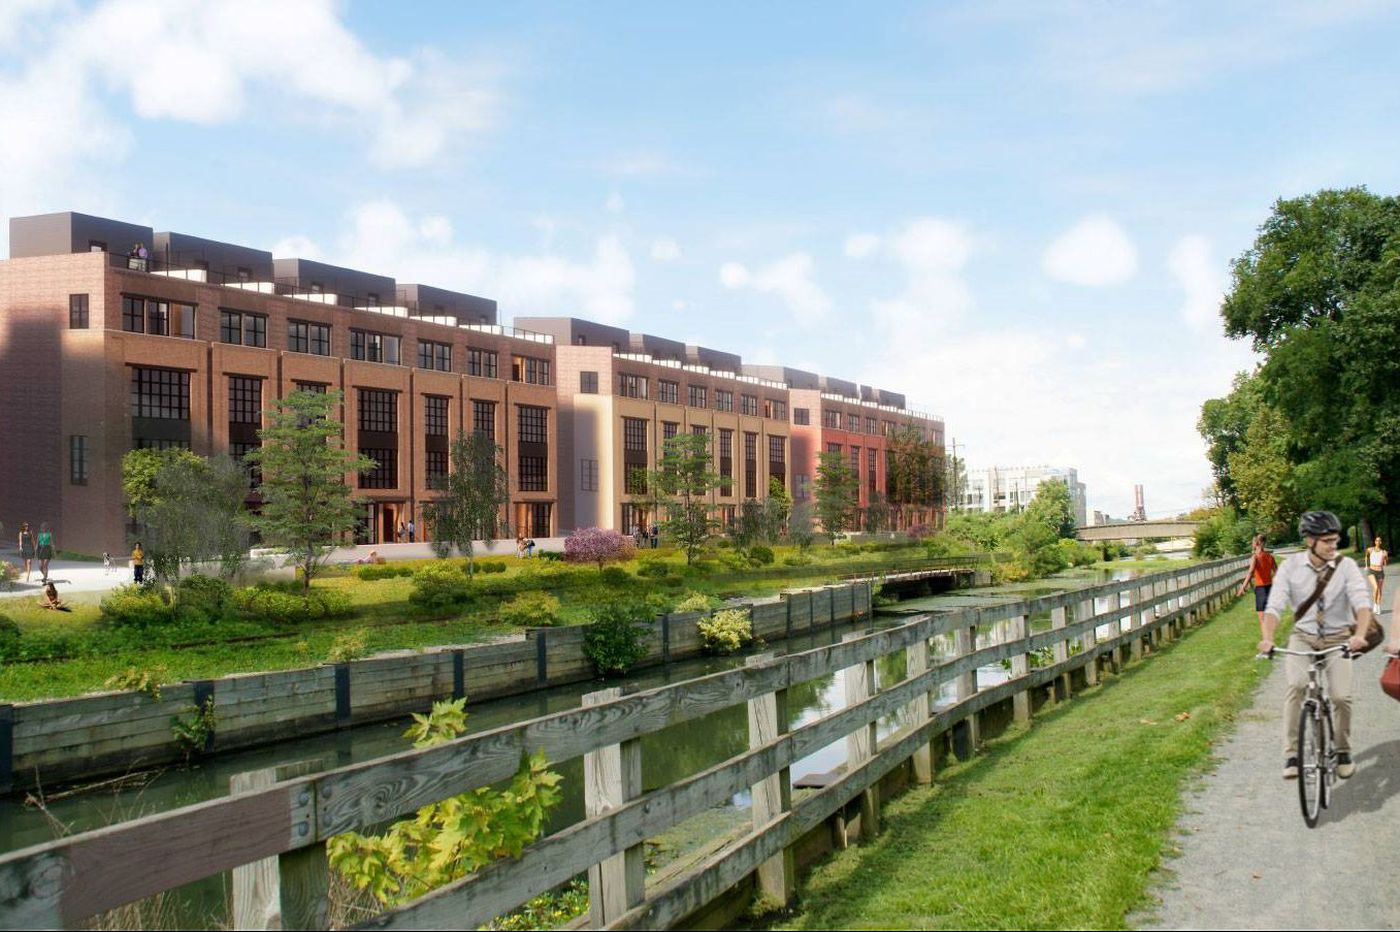 63 luxury townhouses for sale on long vacant Venice Island property in Manayunk